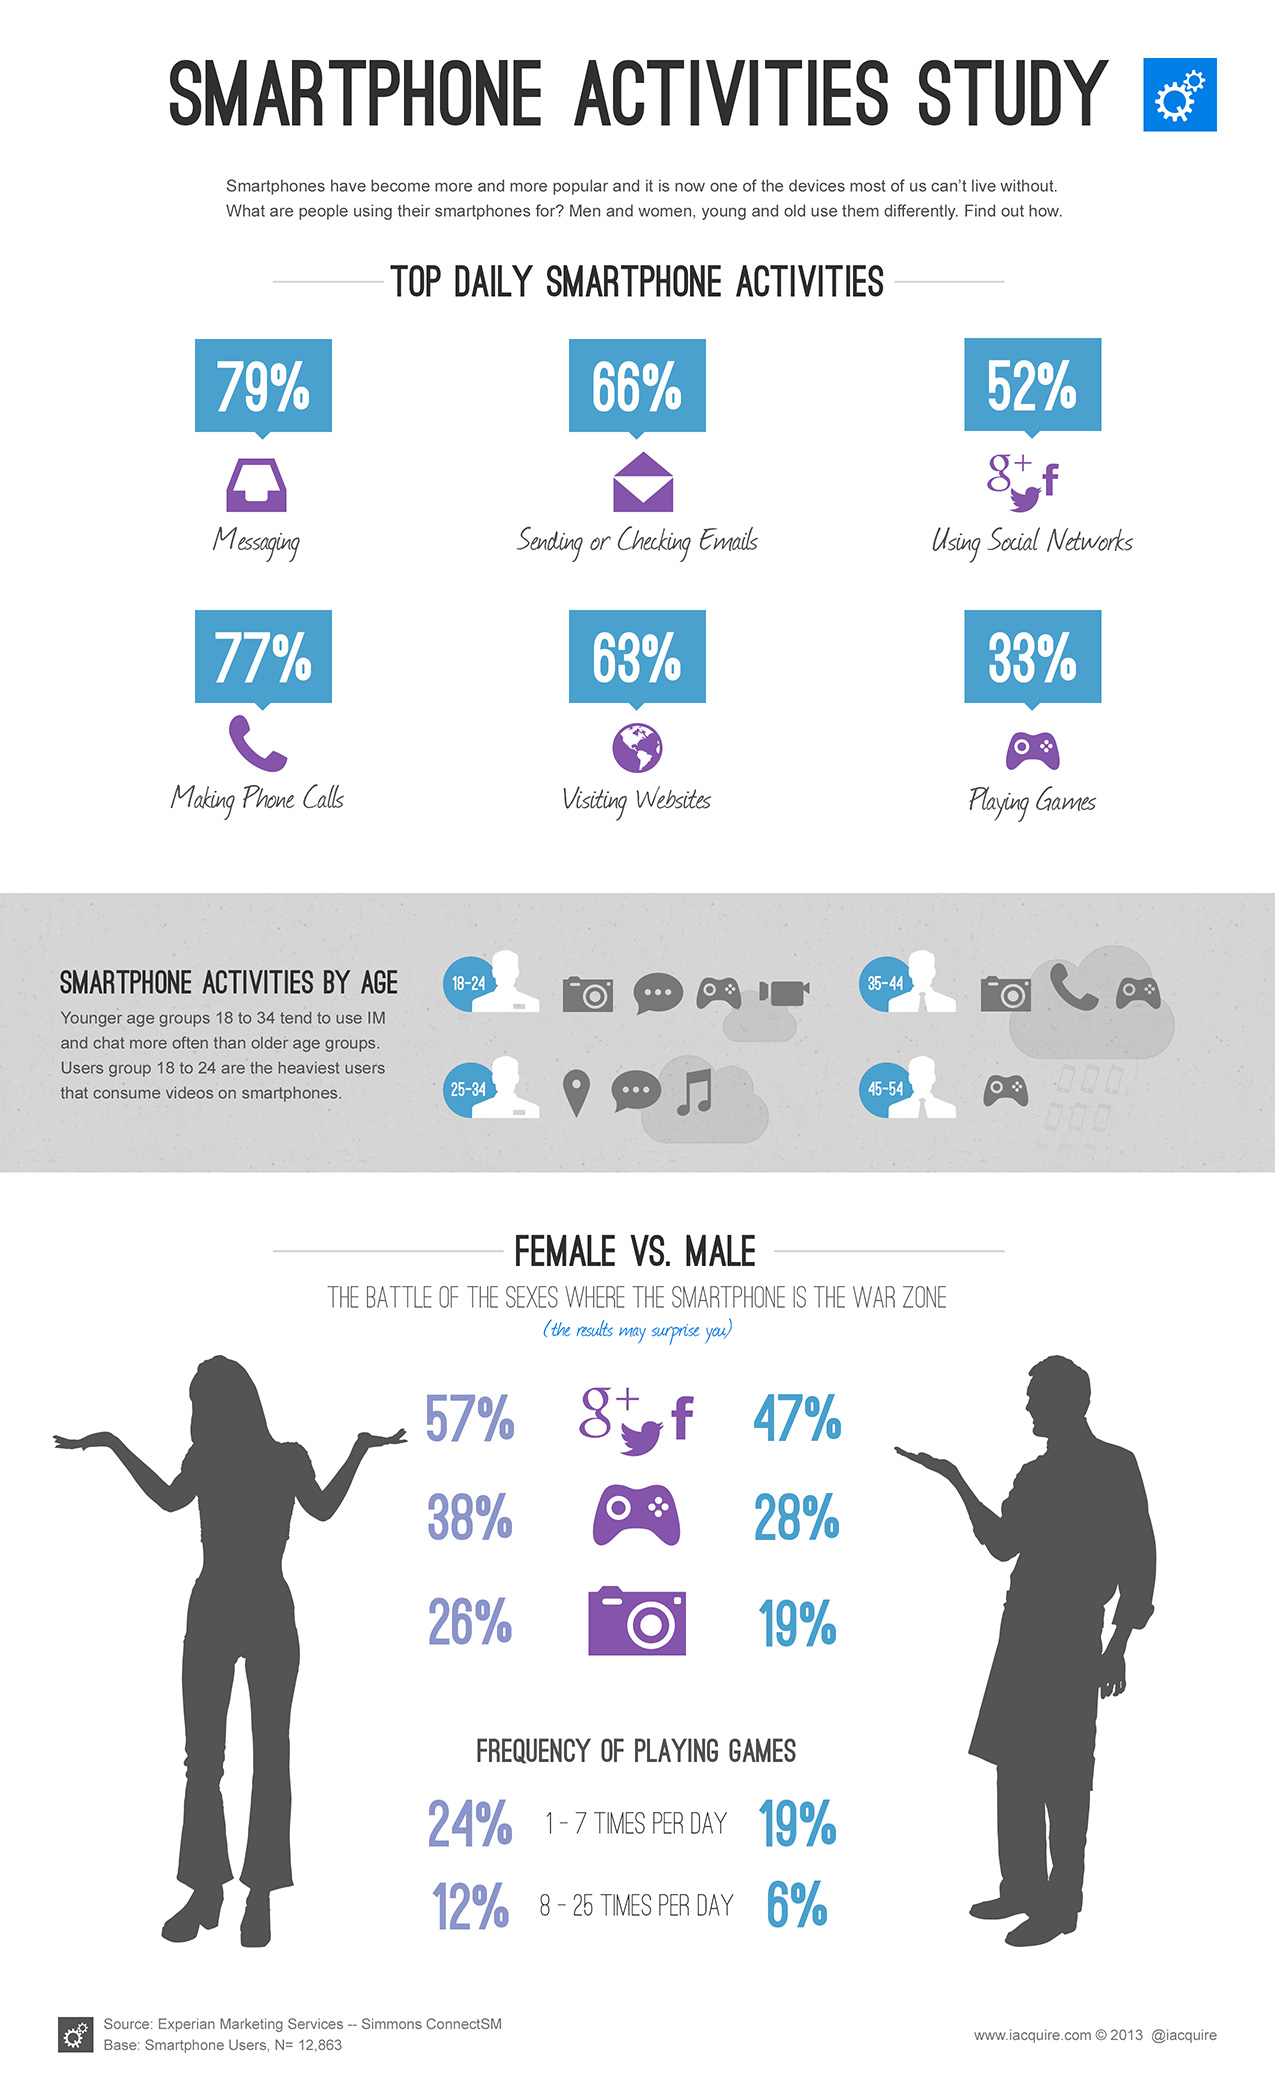 How Do Women And Men Use Their Phones